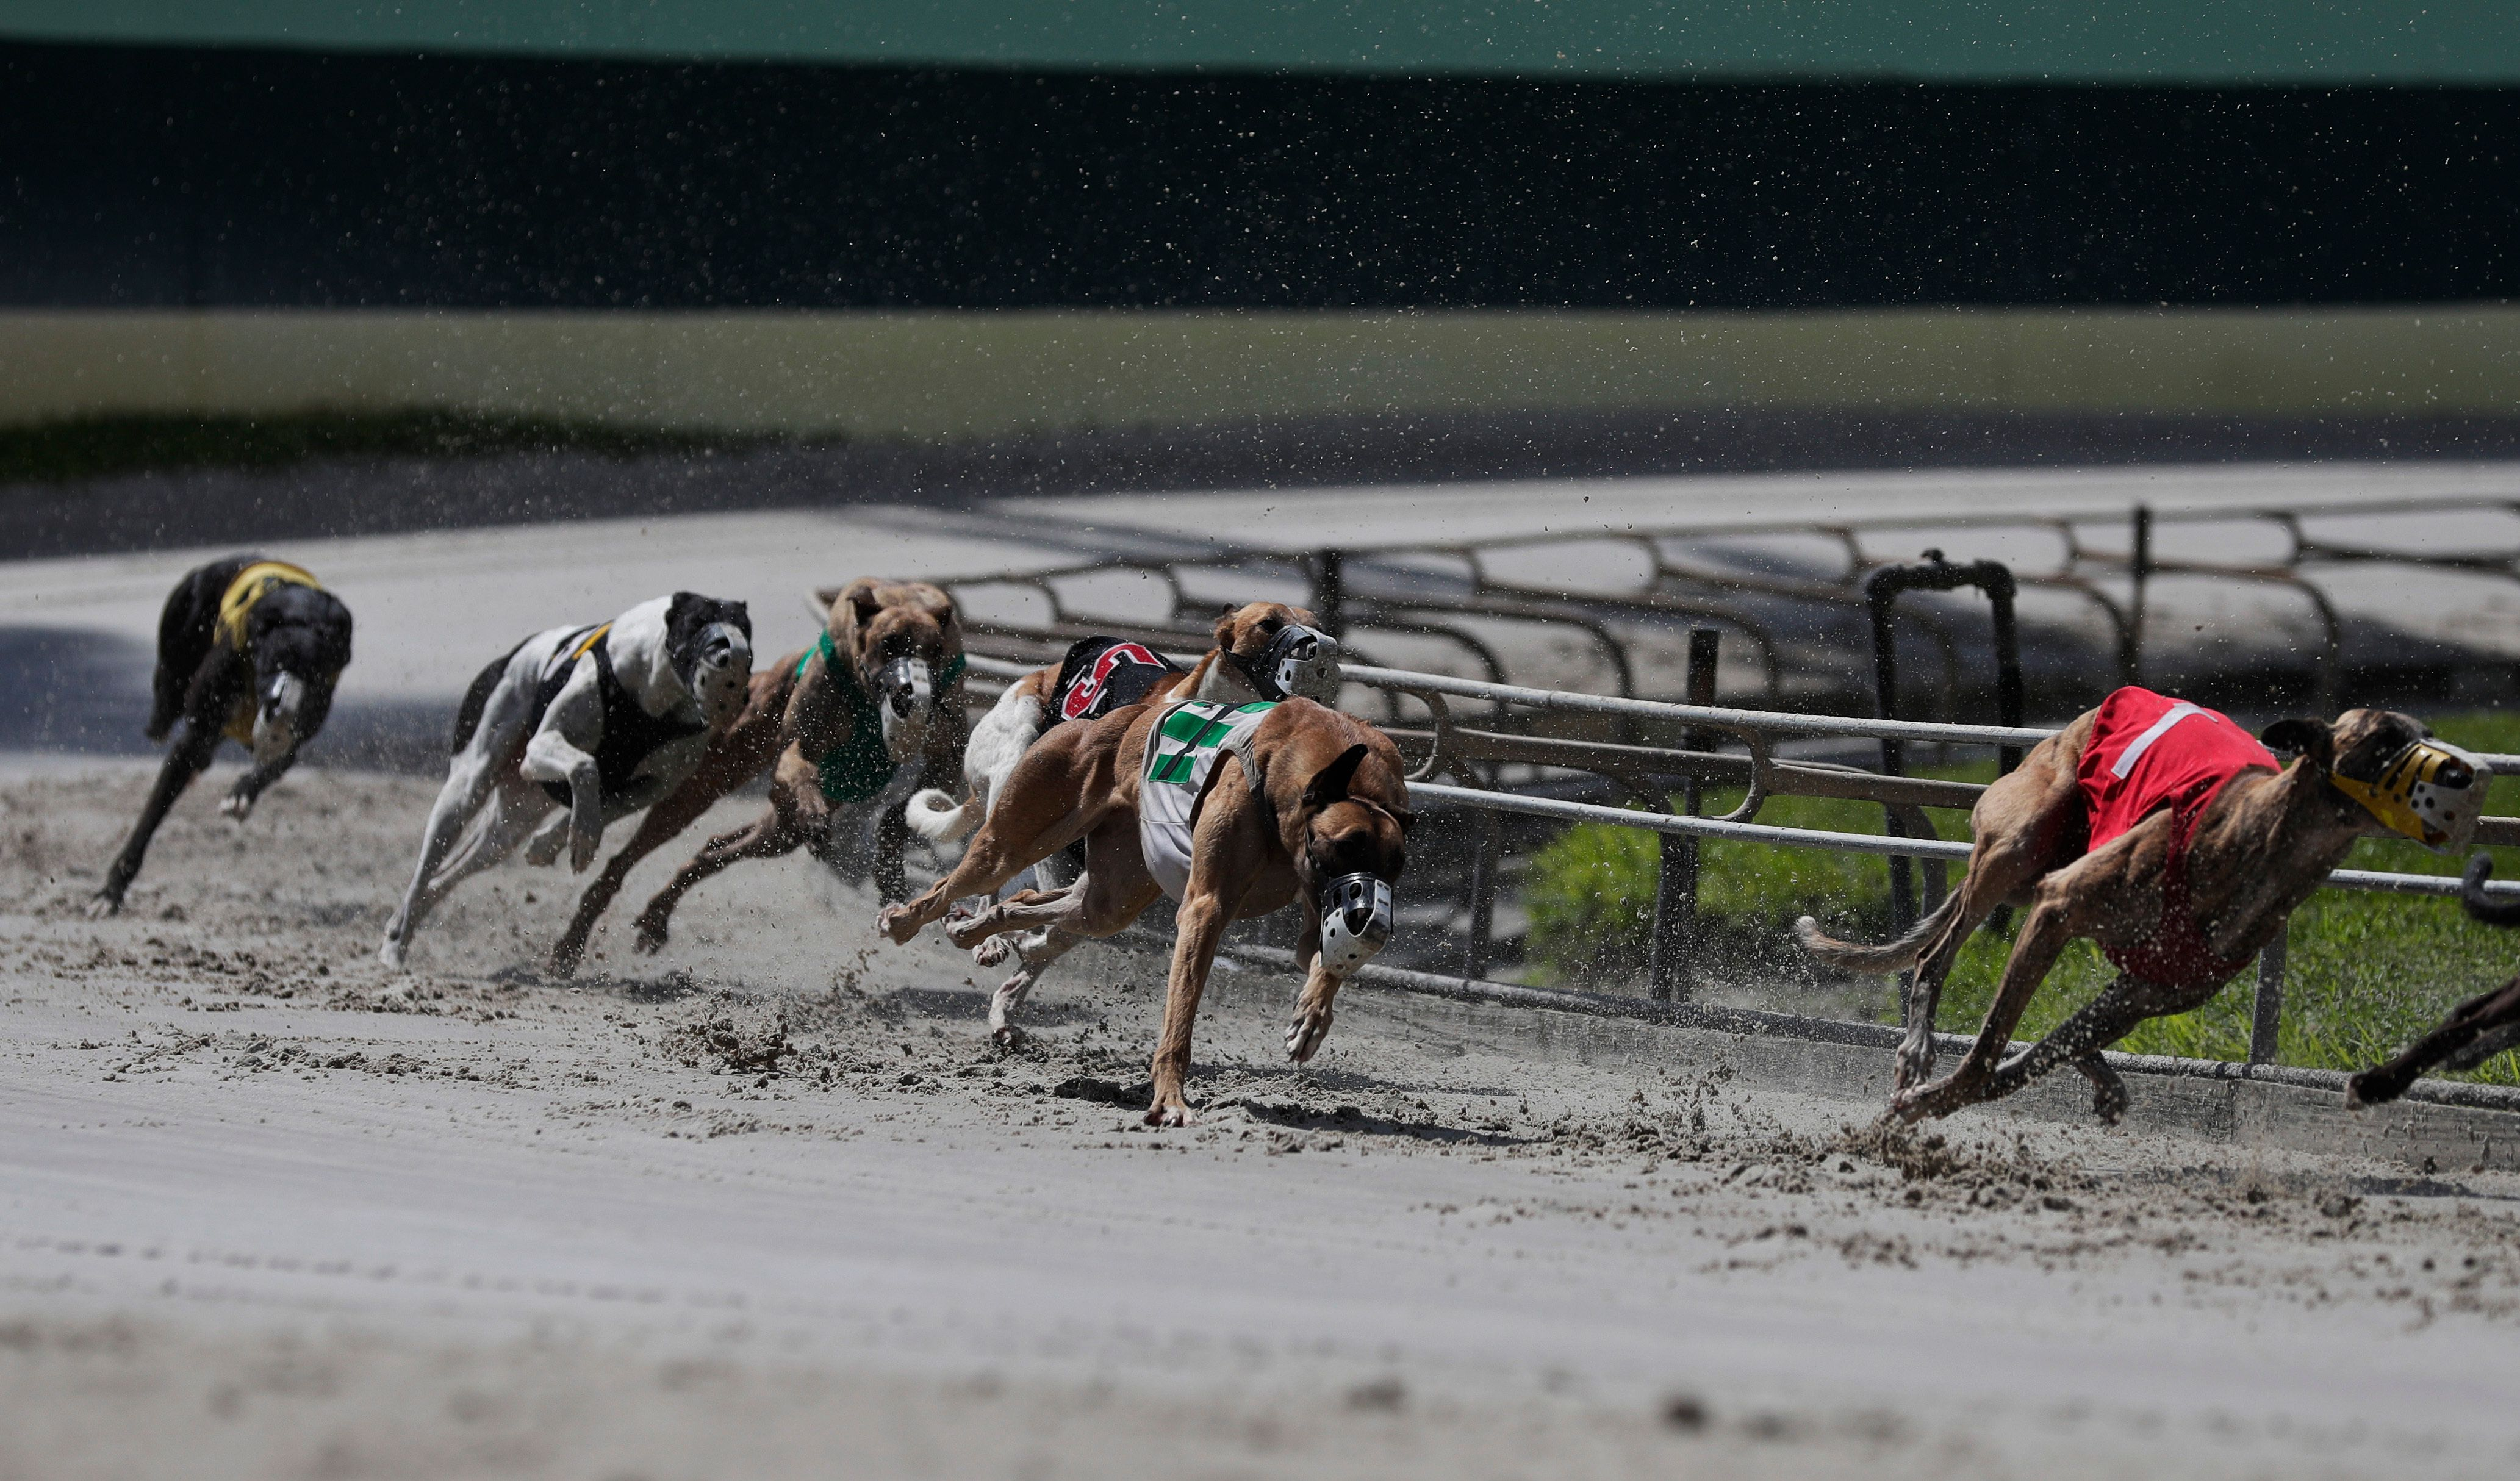 FILE - In this Oct. 4, 2018, file photo, greyhound dogs sprint around a turn during a race at the Palm Beach Kennel Club, in West Palm Beach, Fla. Florida greyhound racing will soon hit the finish line as the sport suffered a rout at the ballot box. The state voted 69 to 31 percent Tuesday, Nov. 6, to pass Amendment 13, which bans the sport beginning on Jan. 1, 2021. (AP Photo/Brynn Anderson, File)